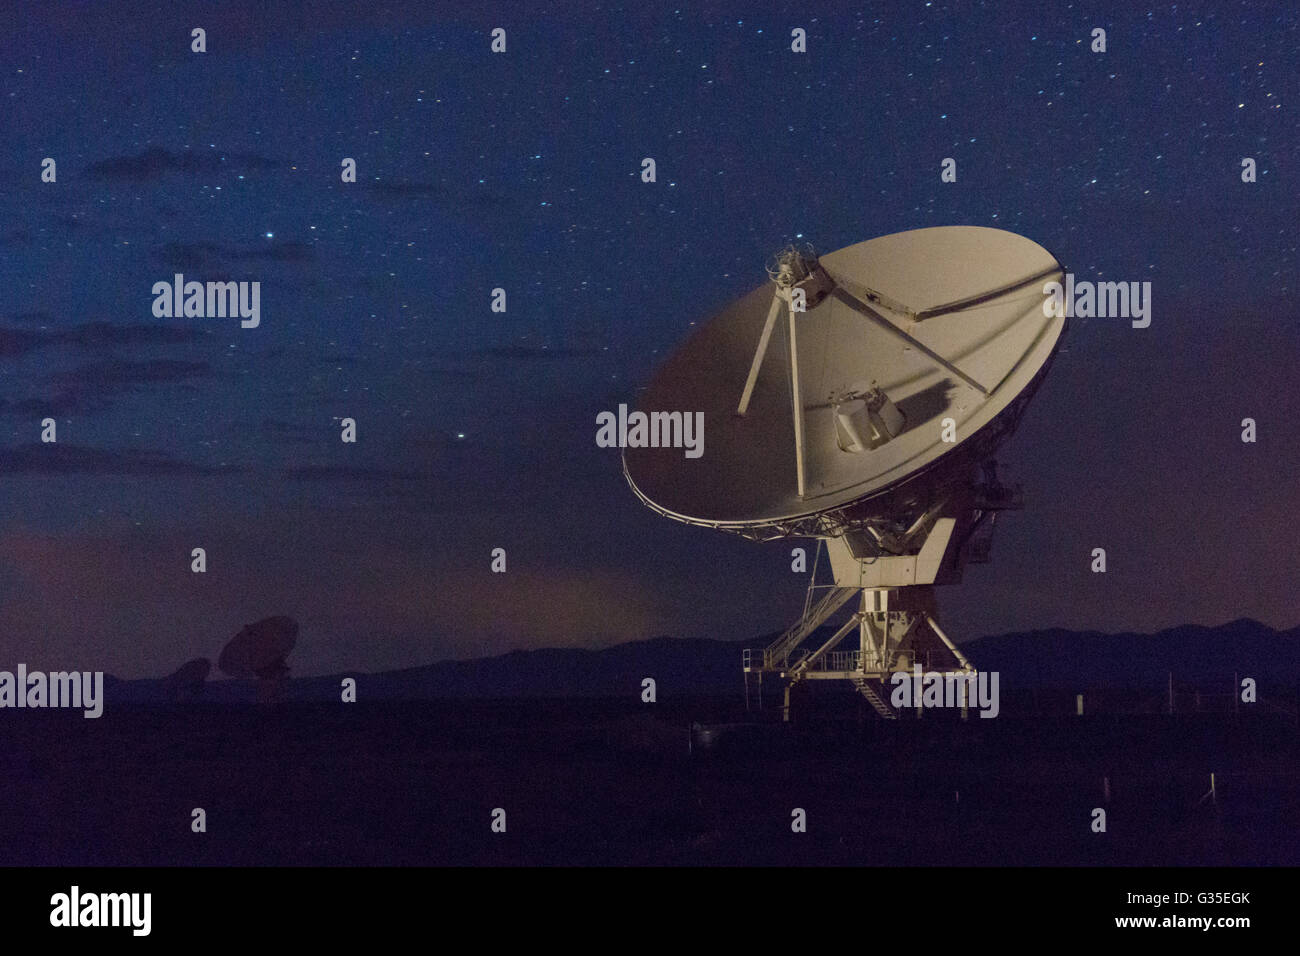 Night sky at the Very large Array-National Radio Astronomy Observatory, New Mexico, USA. Stock Photo